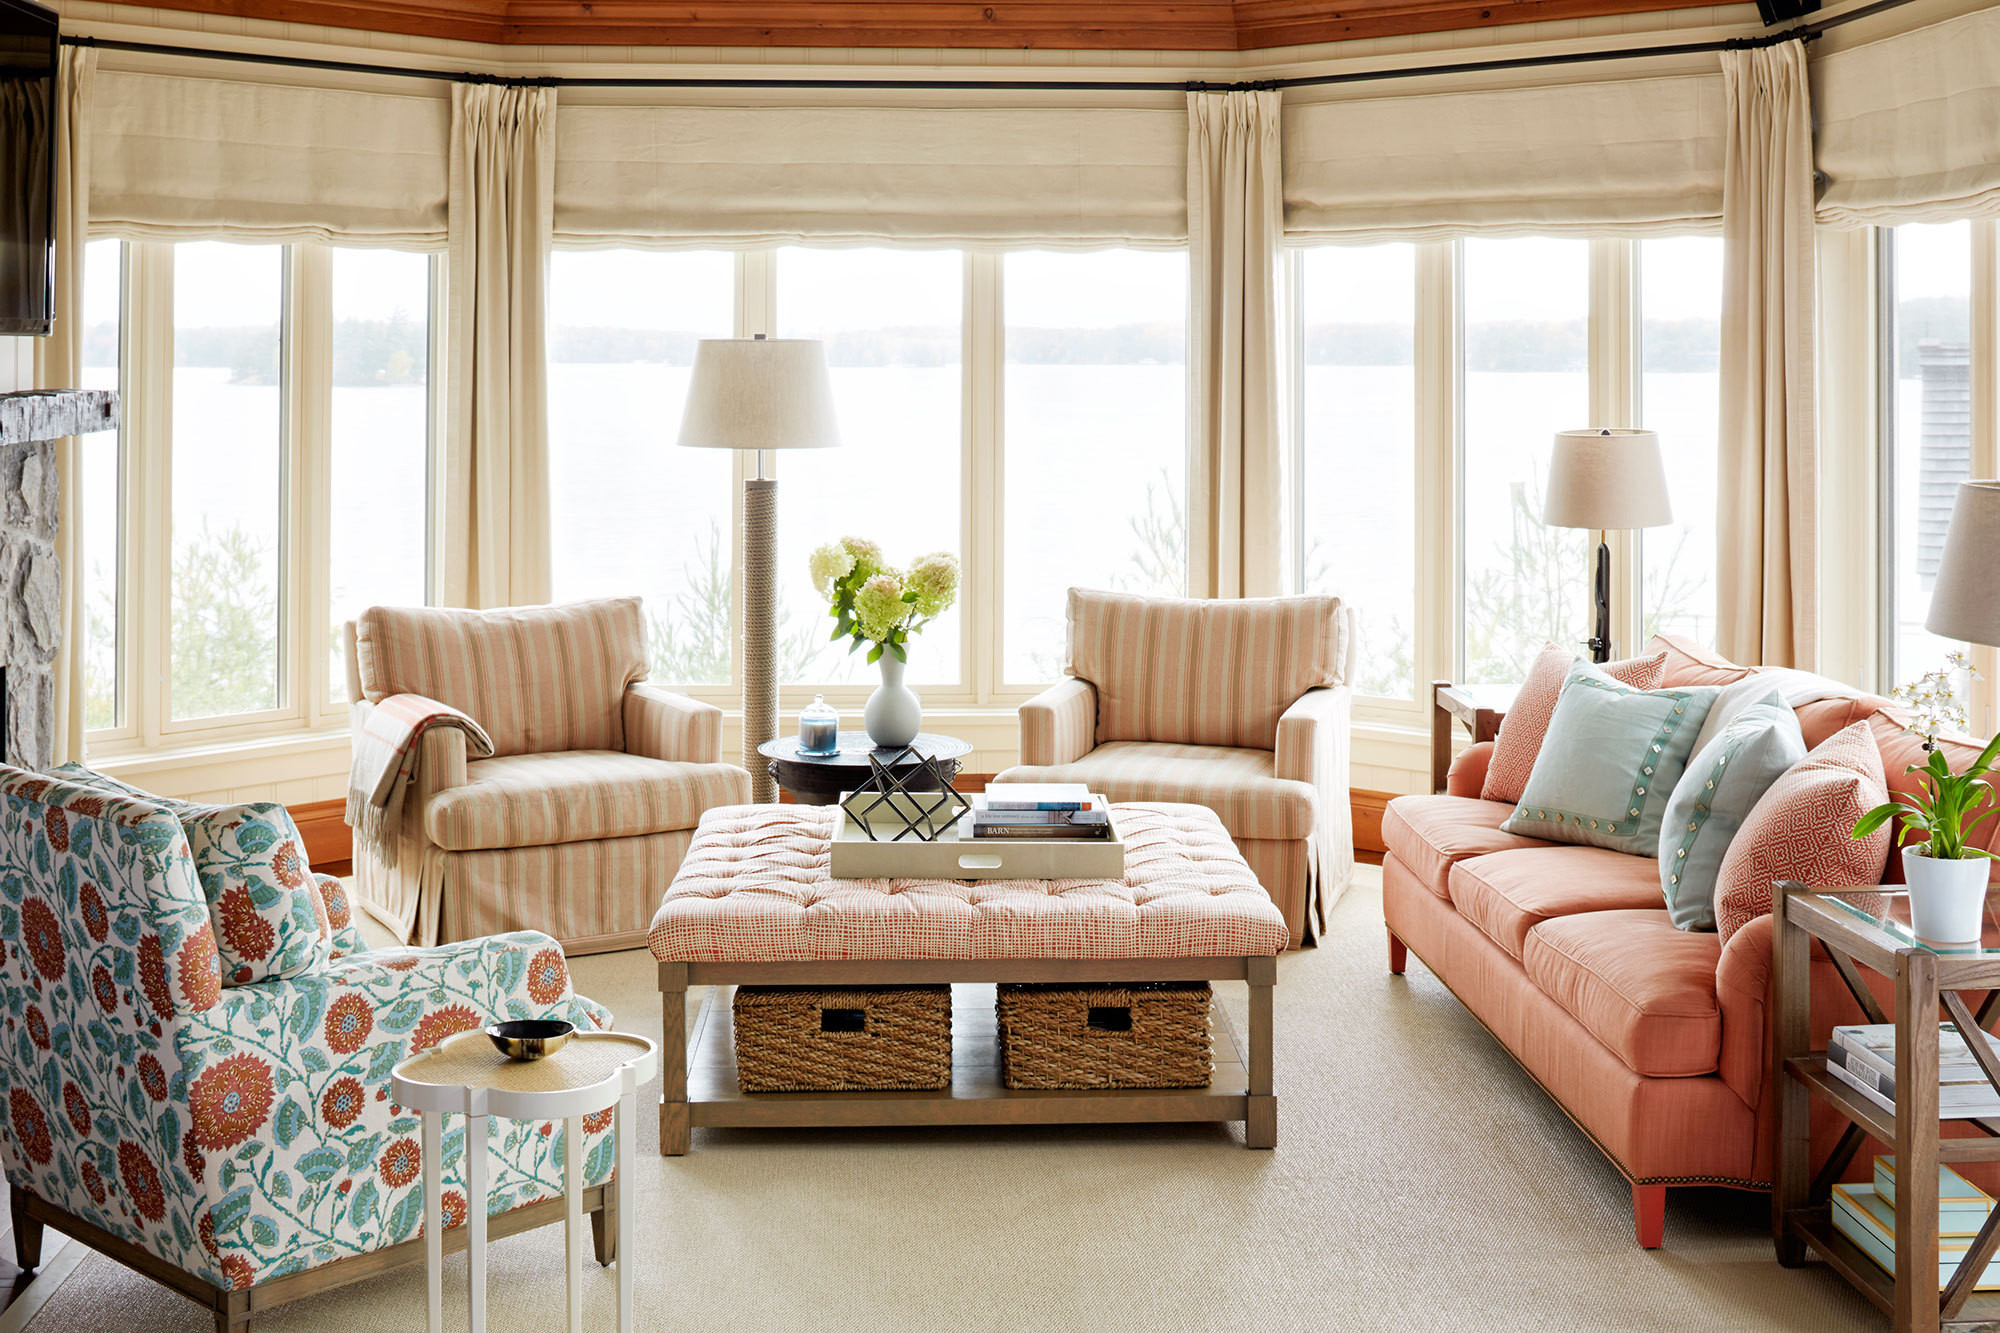 In the family room, overlooking Lake Joseph, upholstered furnishings and understatedhues create a mood of ease and comfort.